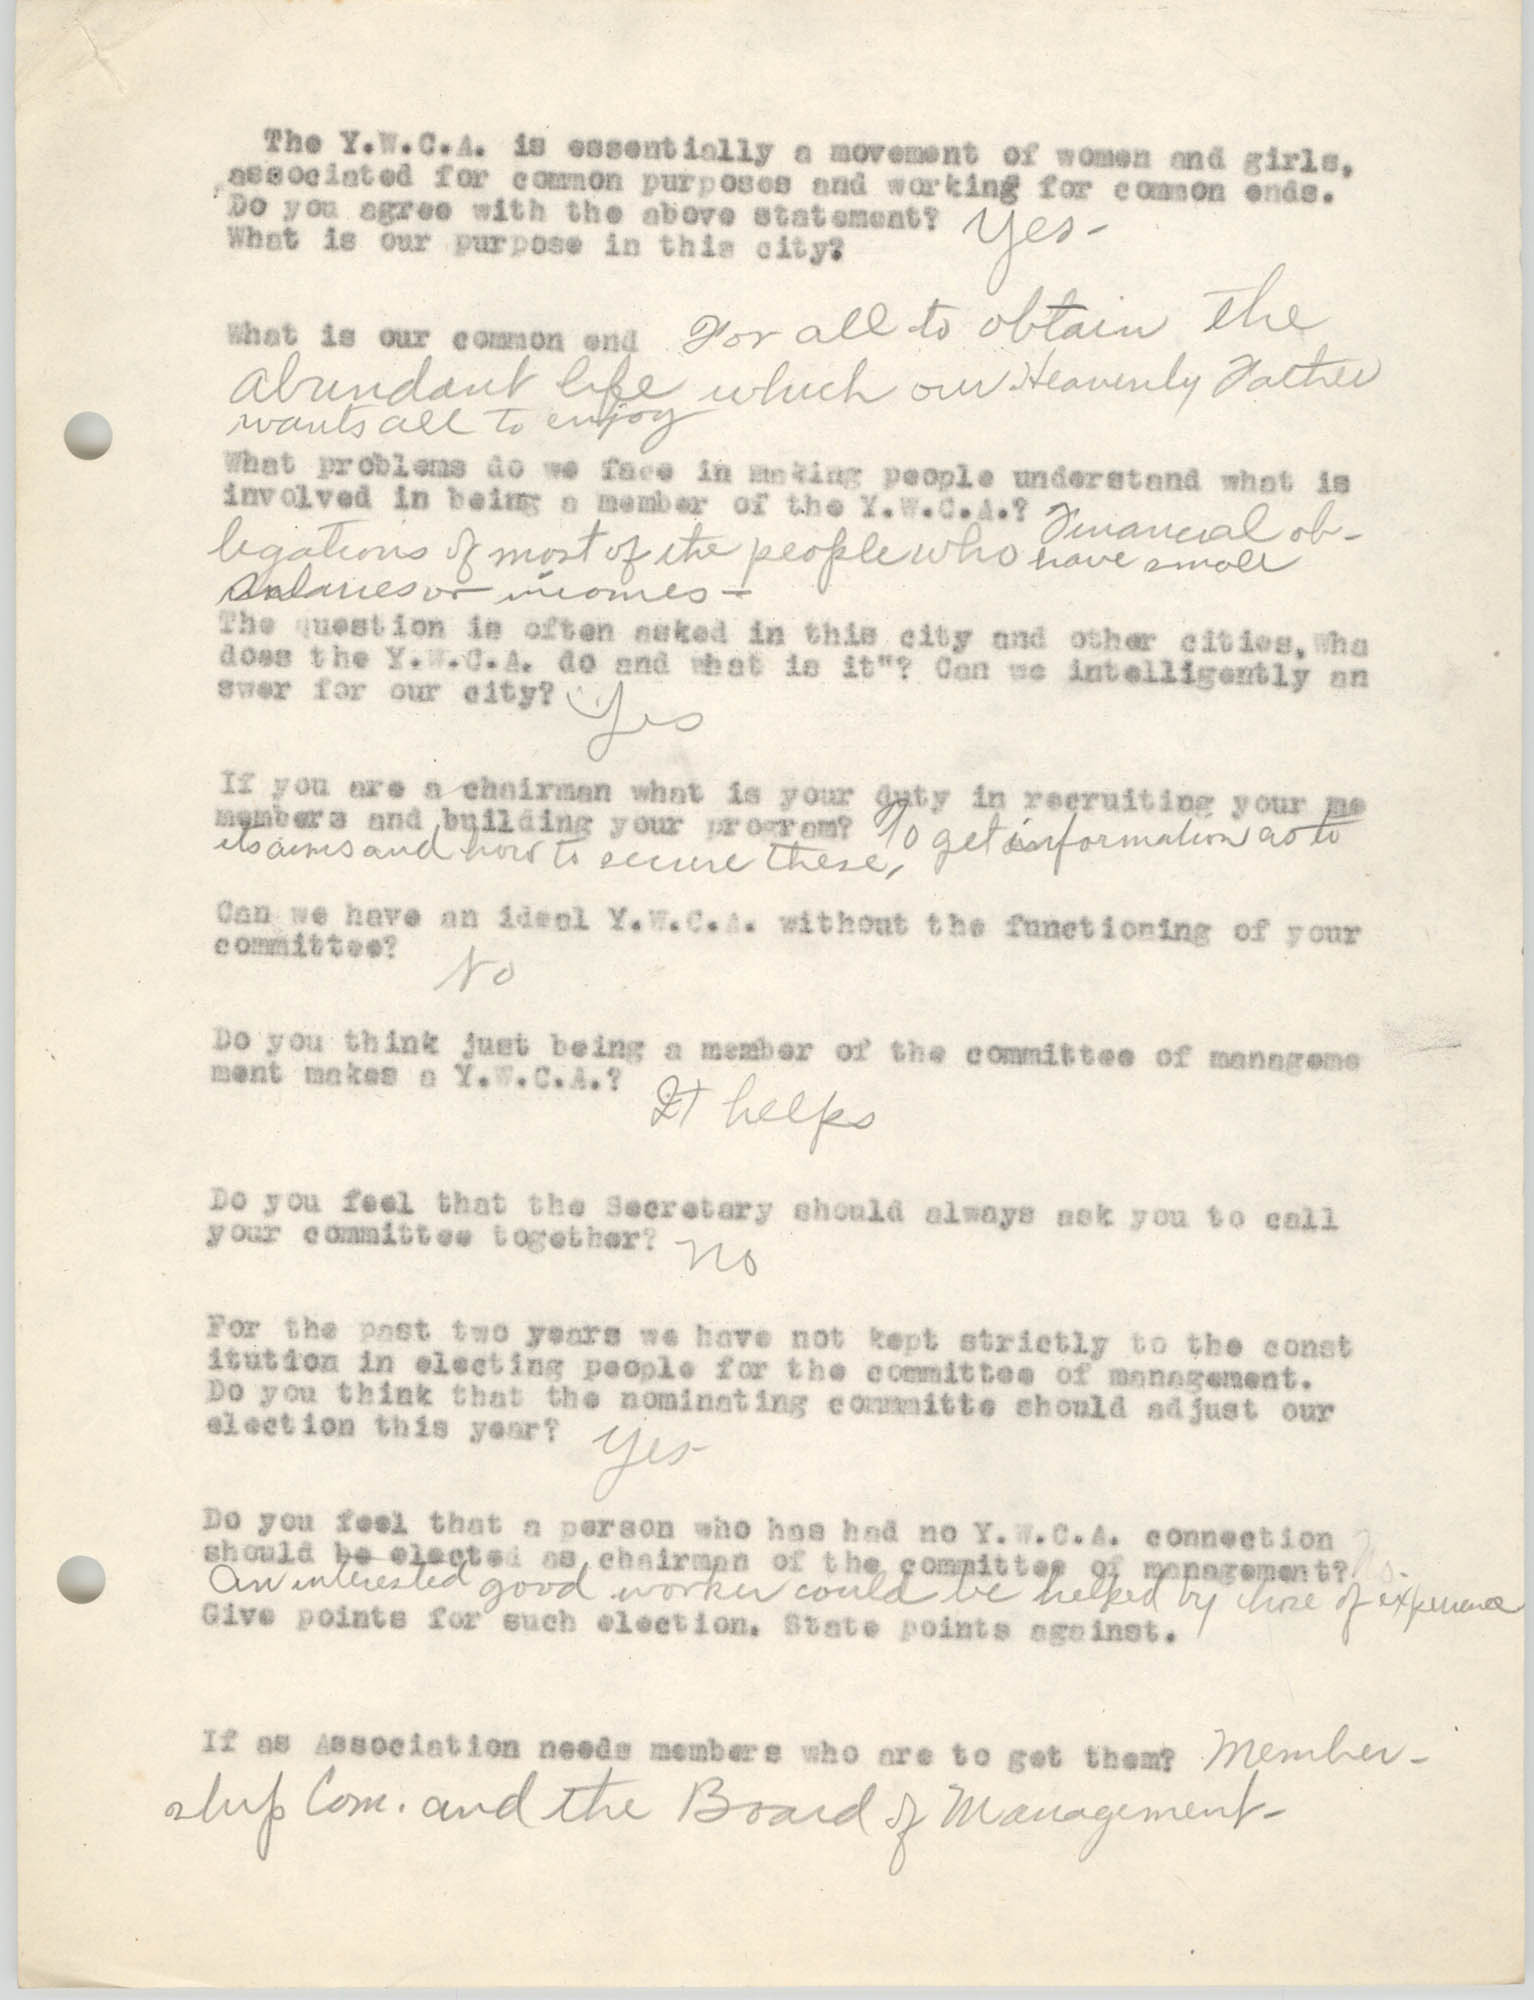 Coming Street Y.W.C.A., Completed Questionnaire Number 6, Page 1